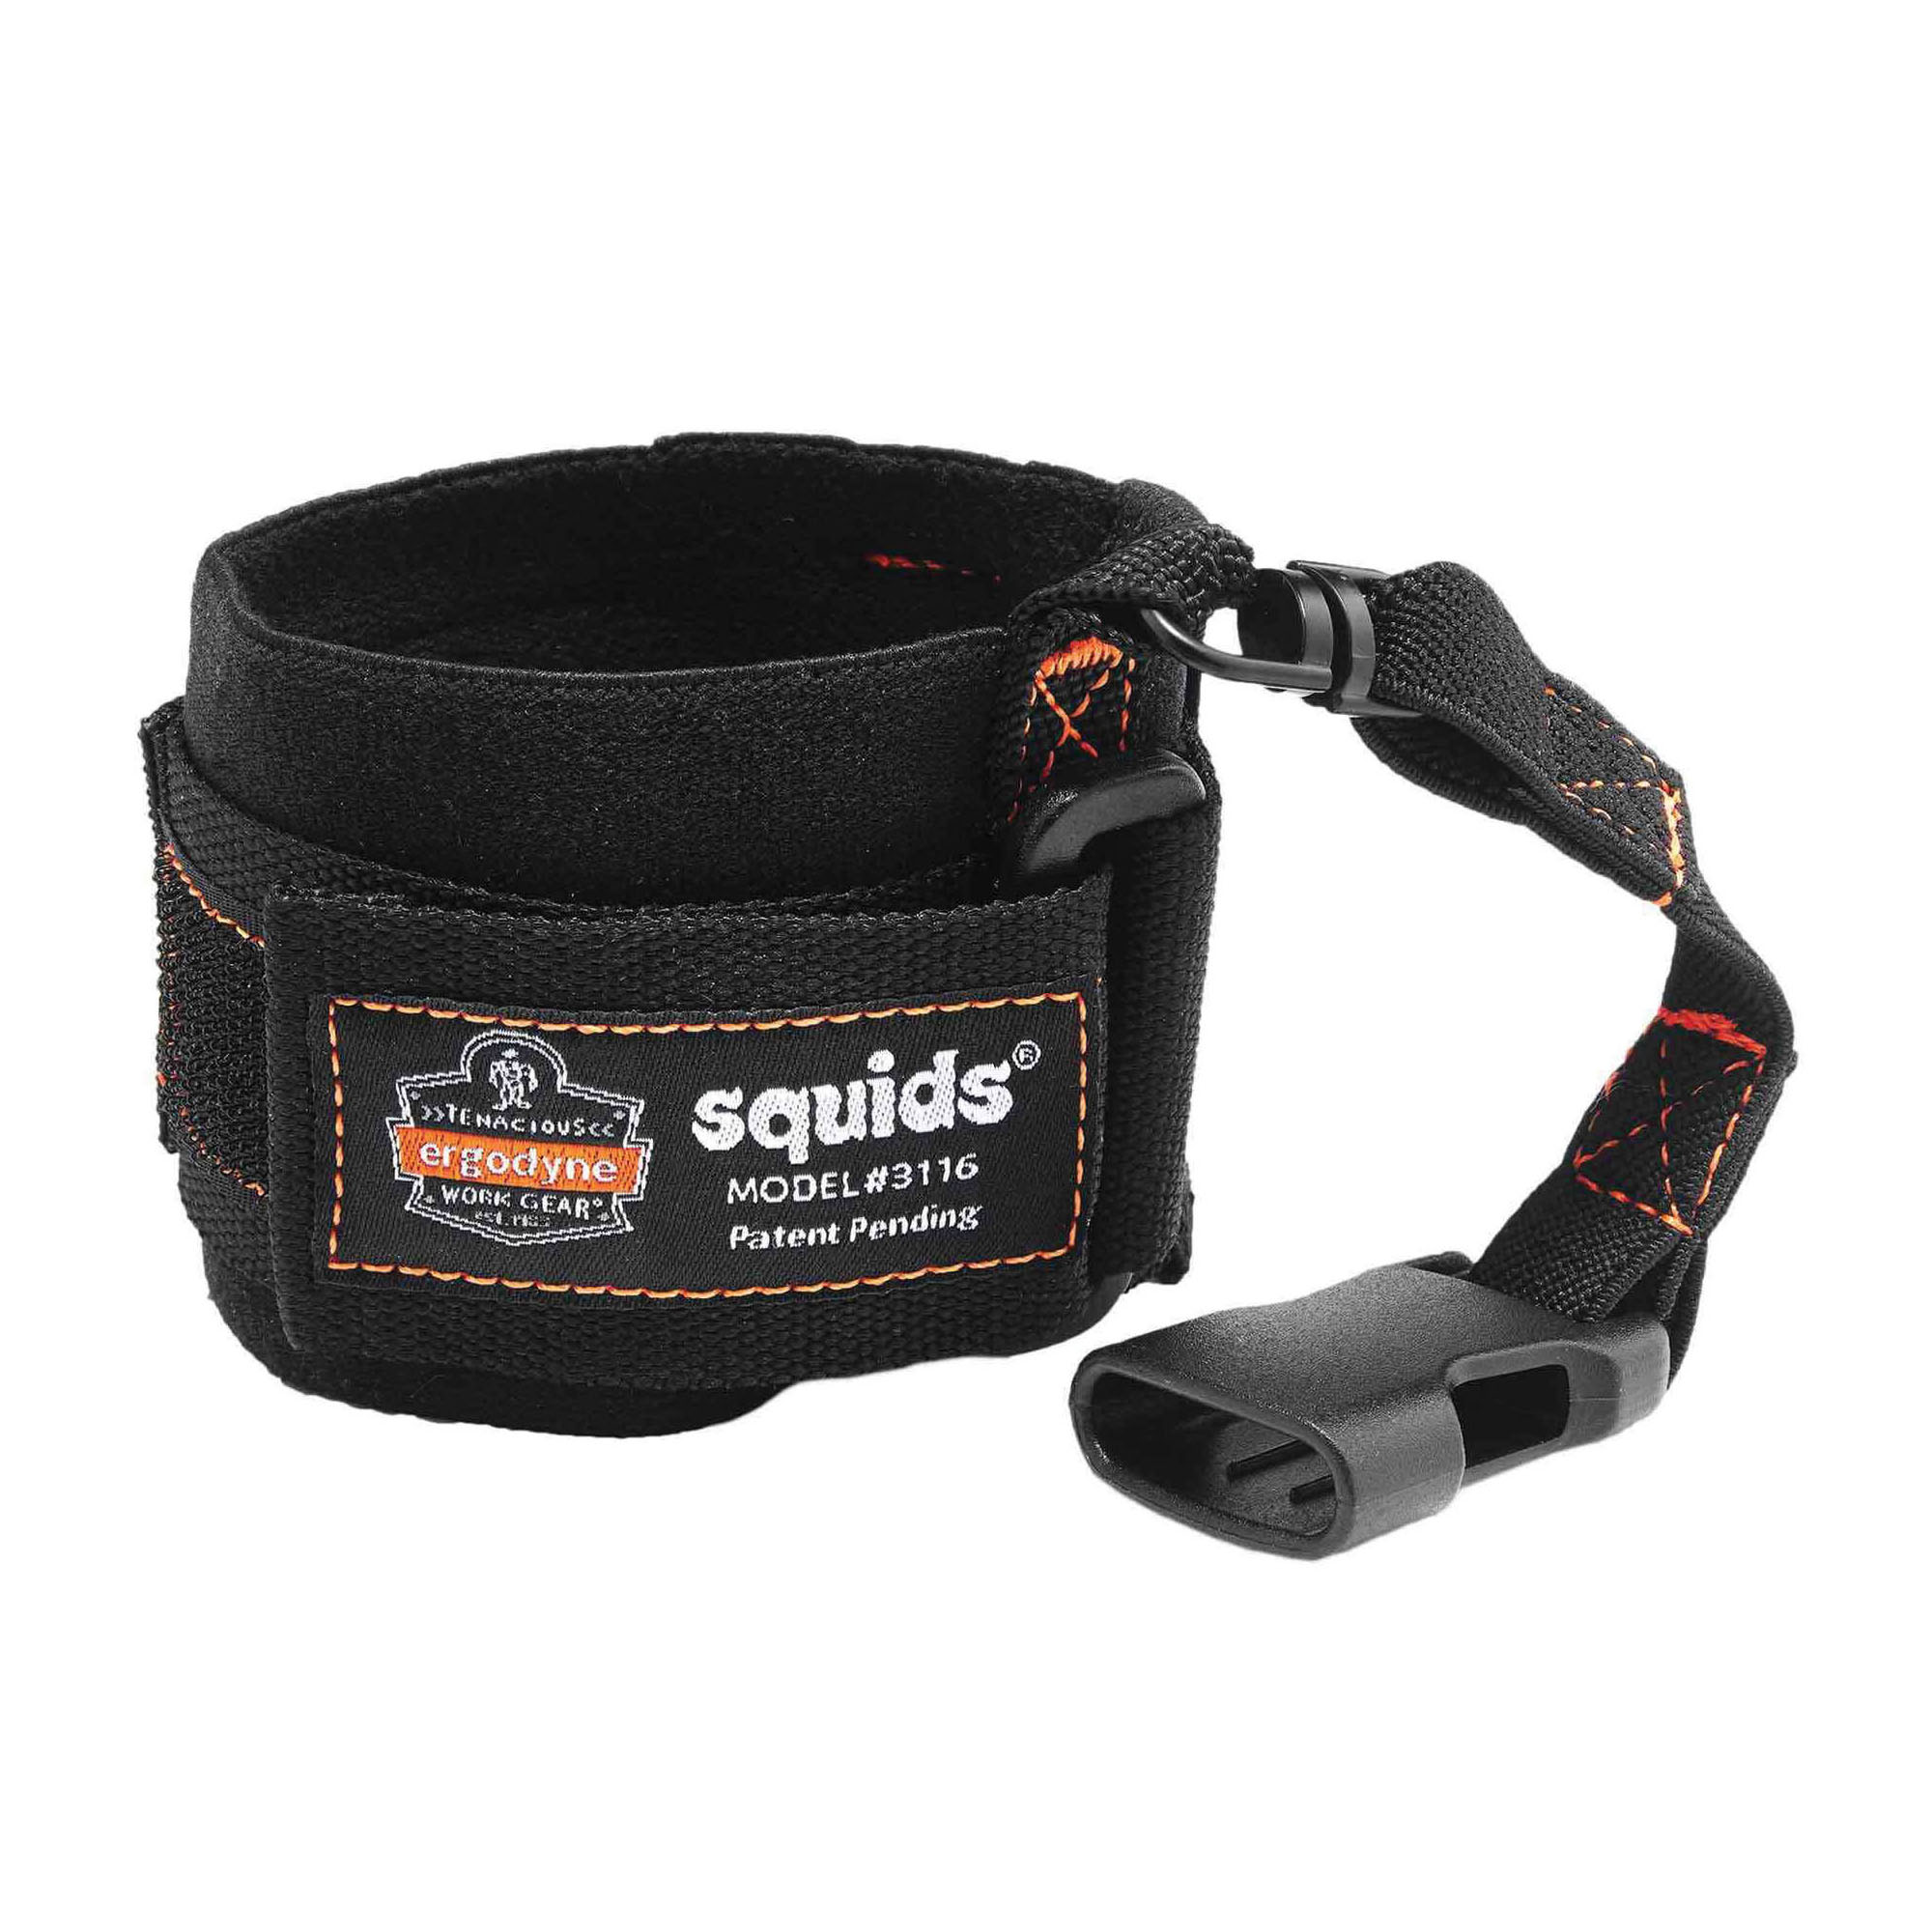 Squids® 19052 3115 Wrist Tool Lanyard, 2 lb Load Capacity, 7-1/2 in L, Polyester Webbing Line, 1 Legs, Choke-Off Loop Harness Connection Hook, Specifications Met: ANSI/ISEA 121-2018